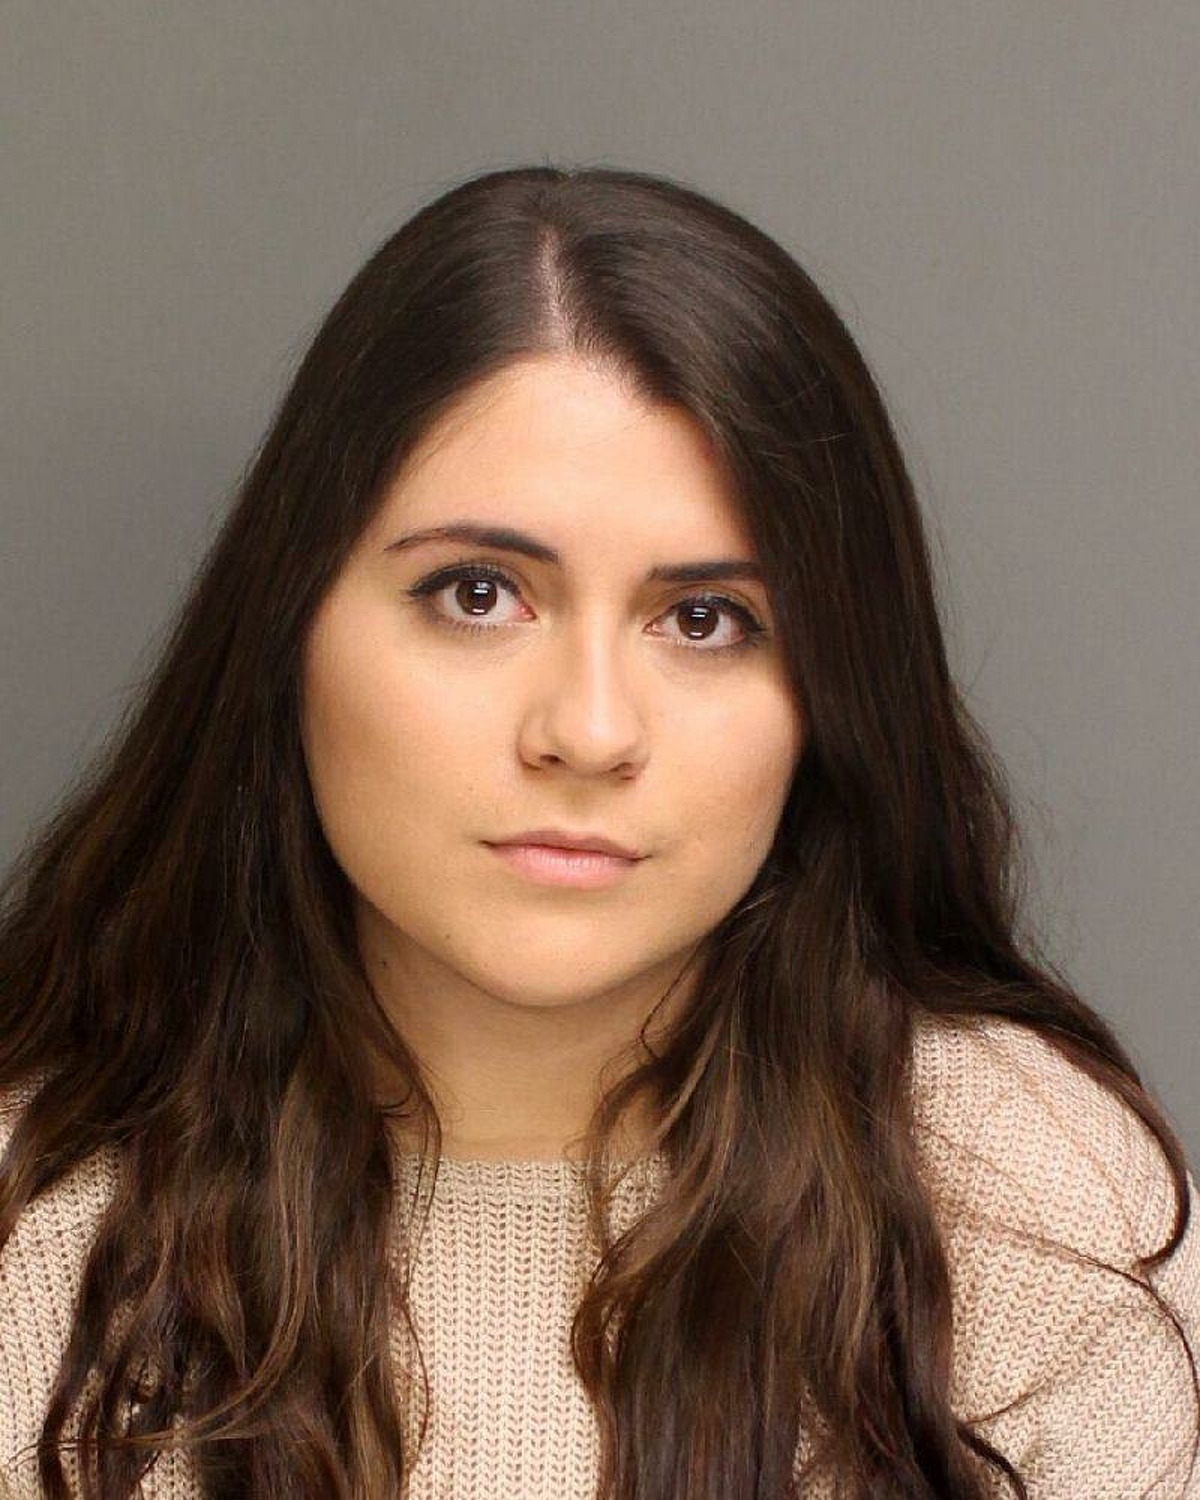 Police say Nikki Yovino, 18, confessed to making up rape allegations college football players to gain the sympathy of a prospective boyfriend. The players were later cut from the team, had their scholarships stripped and were forced into leaving the school.